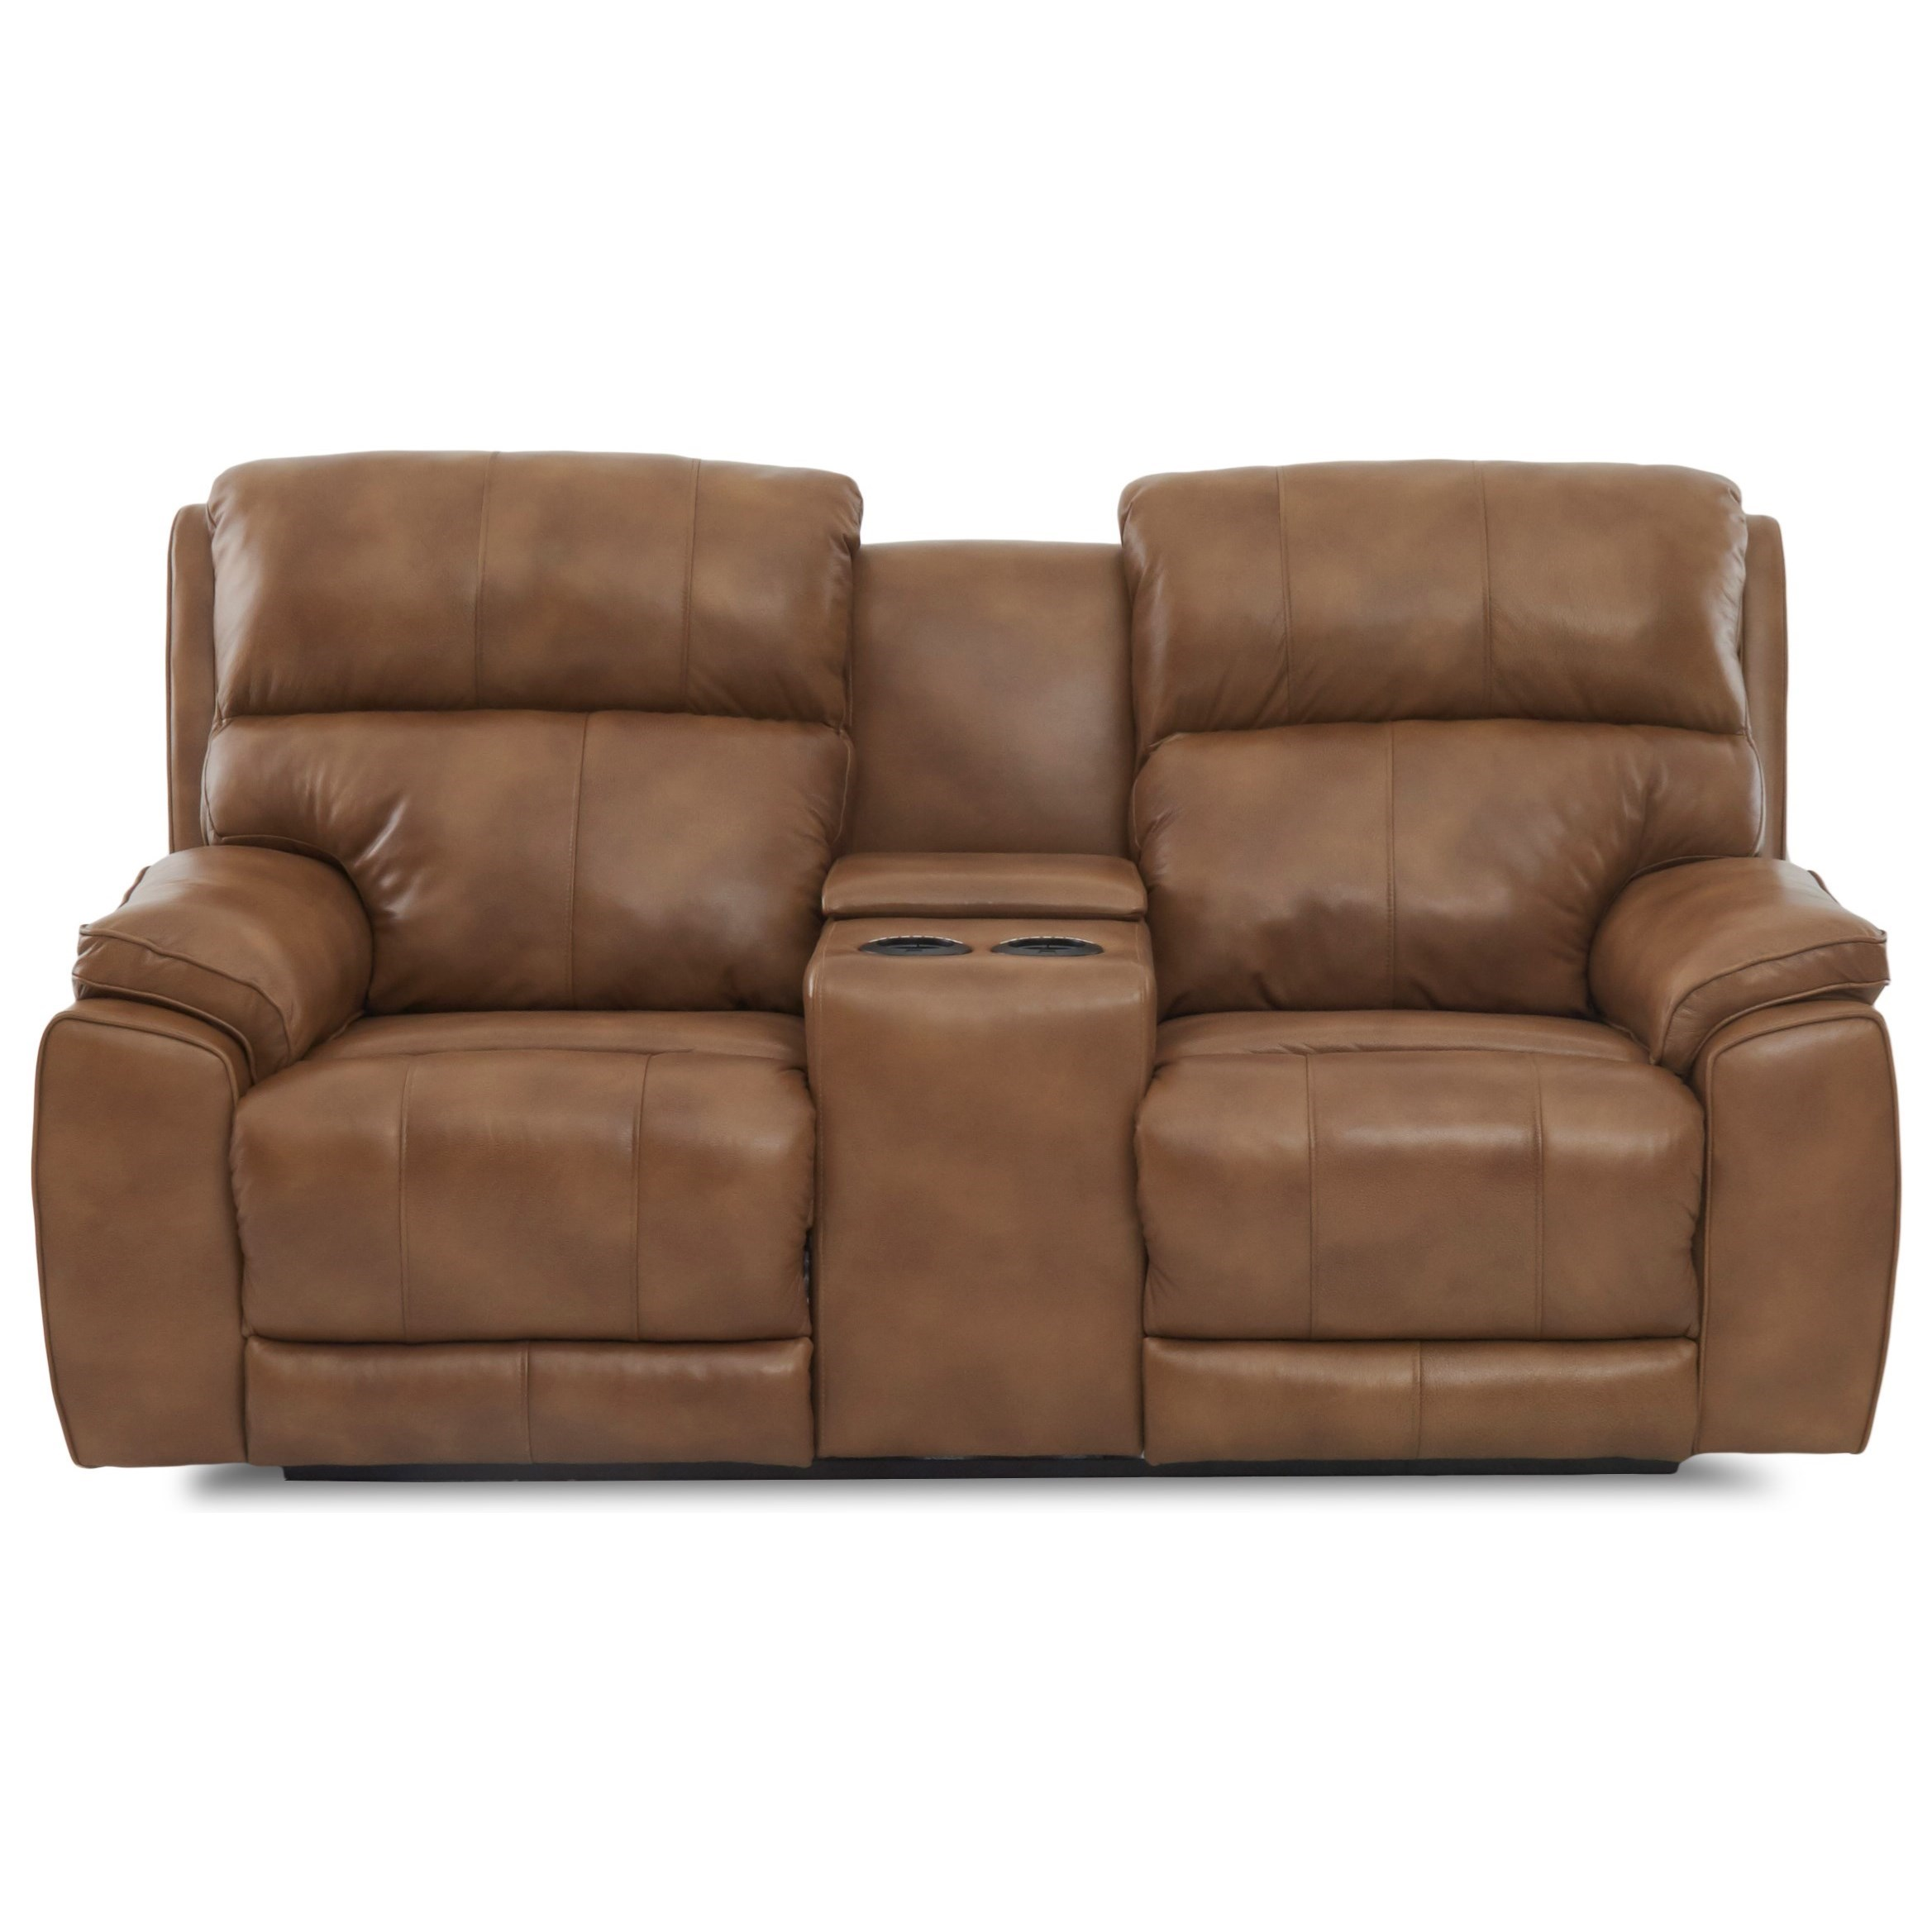 Omaha Power Console Reclining Love w/ Pwr Head by Klaussner at Catalog Outlet